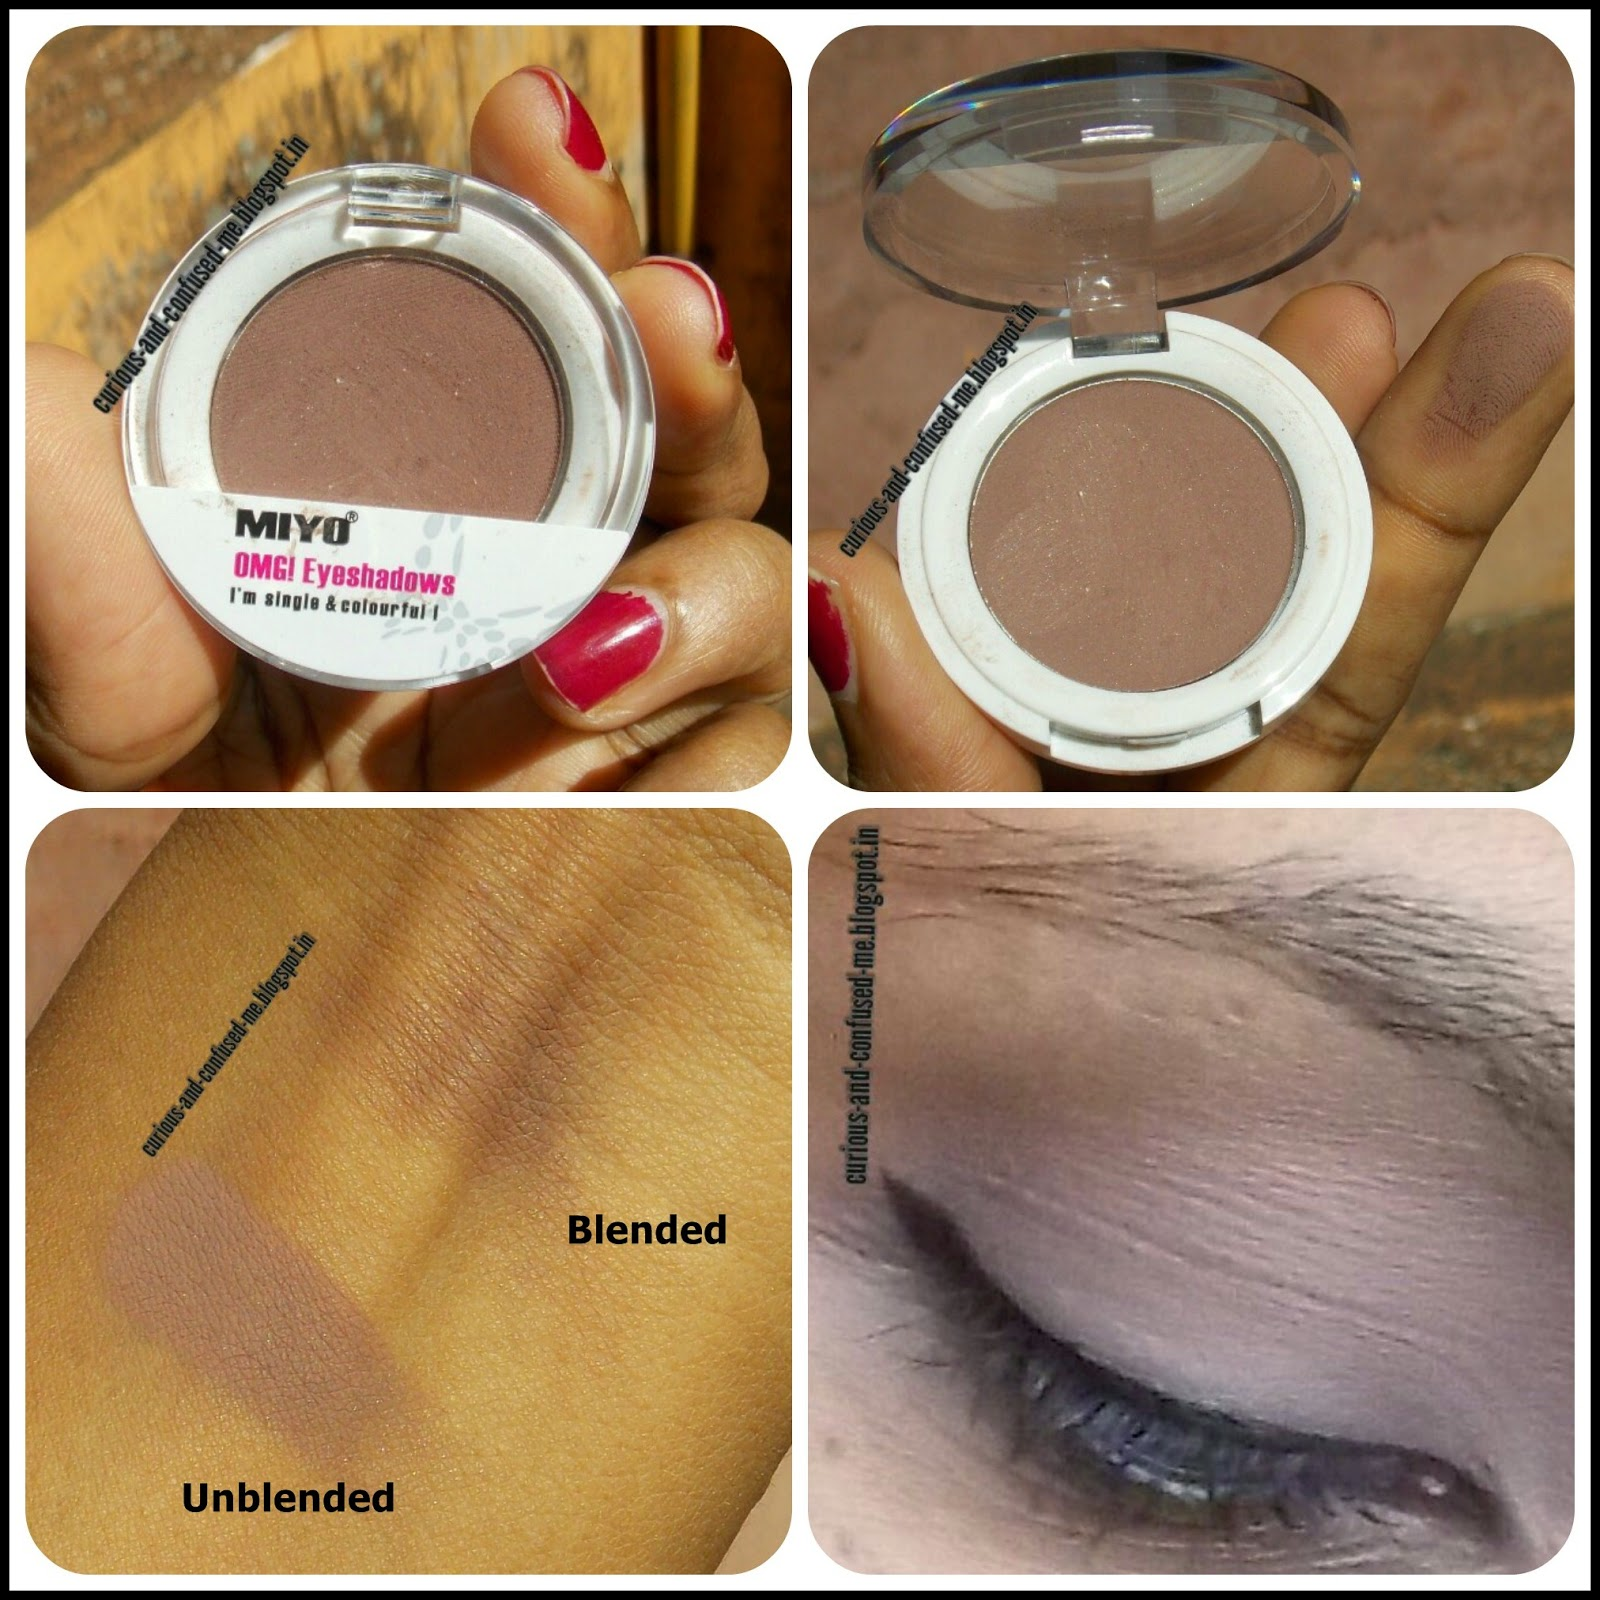 Miyo 7- Chocolate Single Eyeshadows , Miyo 7- Chocolate Single Eyeshadows Omg review, Miyo 7- Chocolate Single Eyeshadows Omg swatch, Miyo Single eyeshadow review OMG, Best brown eyeshadow India, Brown eyeshadow India, Budget brown eyeshadow.